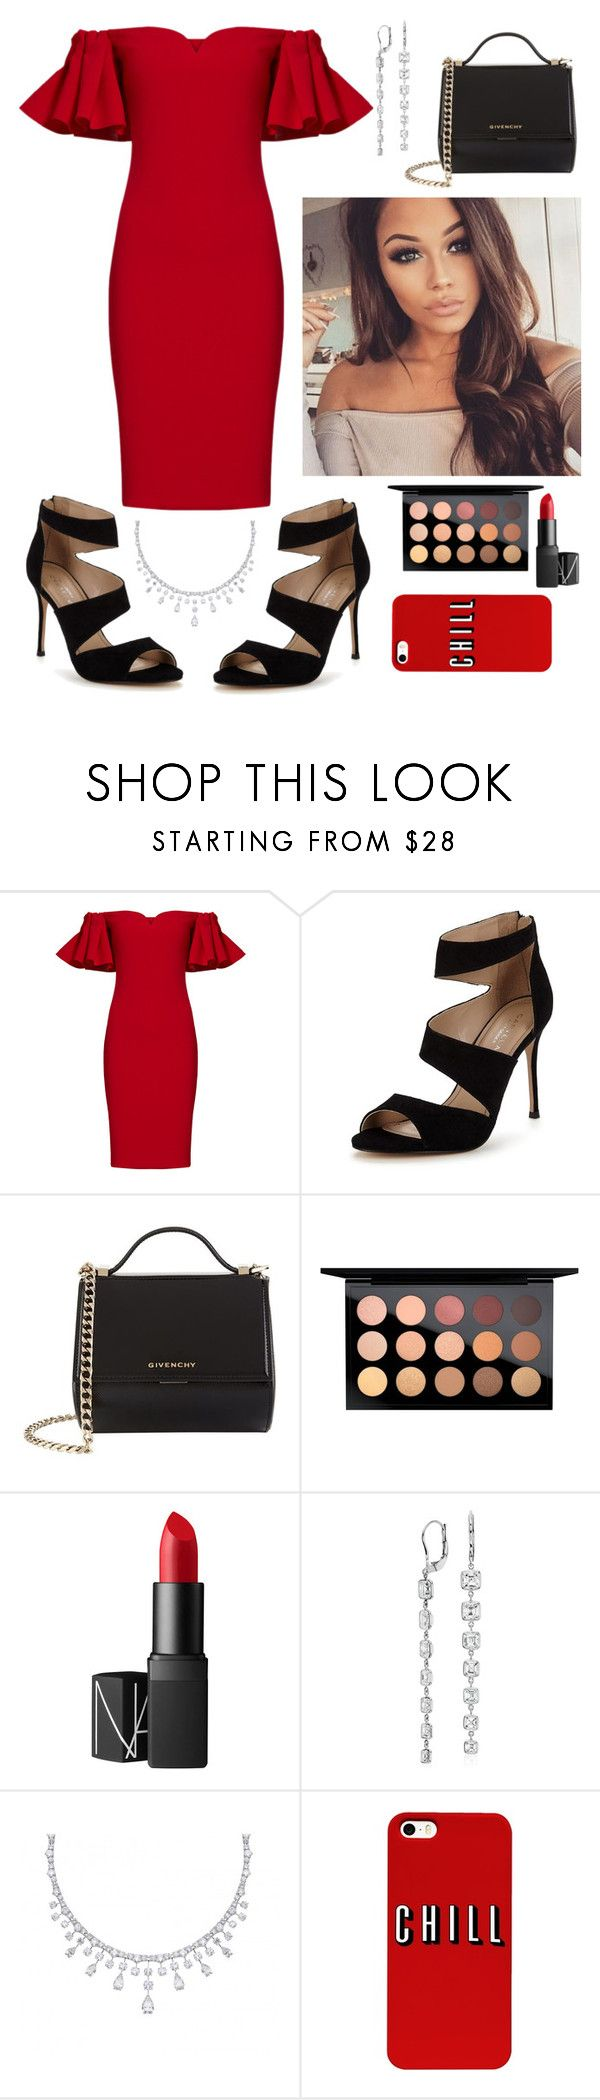 """Untitled #88"" by silviamachado20 ❤ liked on Polyvore featuring Badgley Mischka, Carvela, Givenchy, MAC Cosmetics, NARS Cosmetics and Blue Nile"